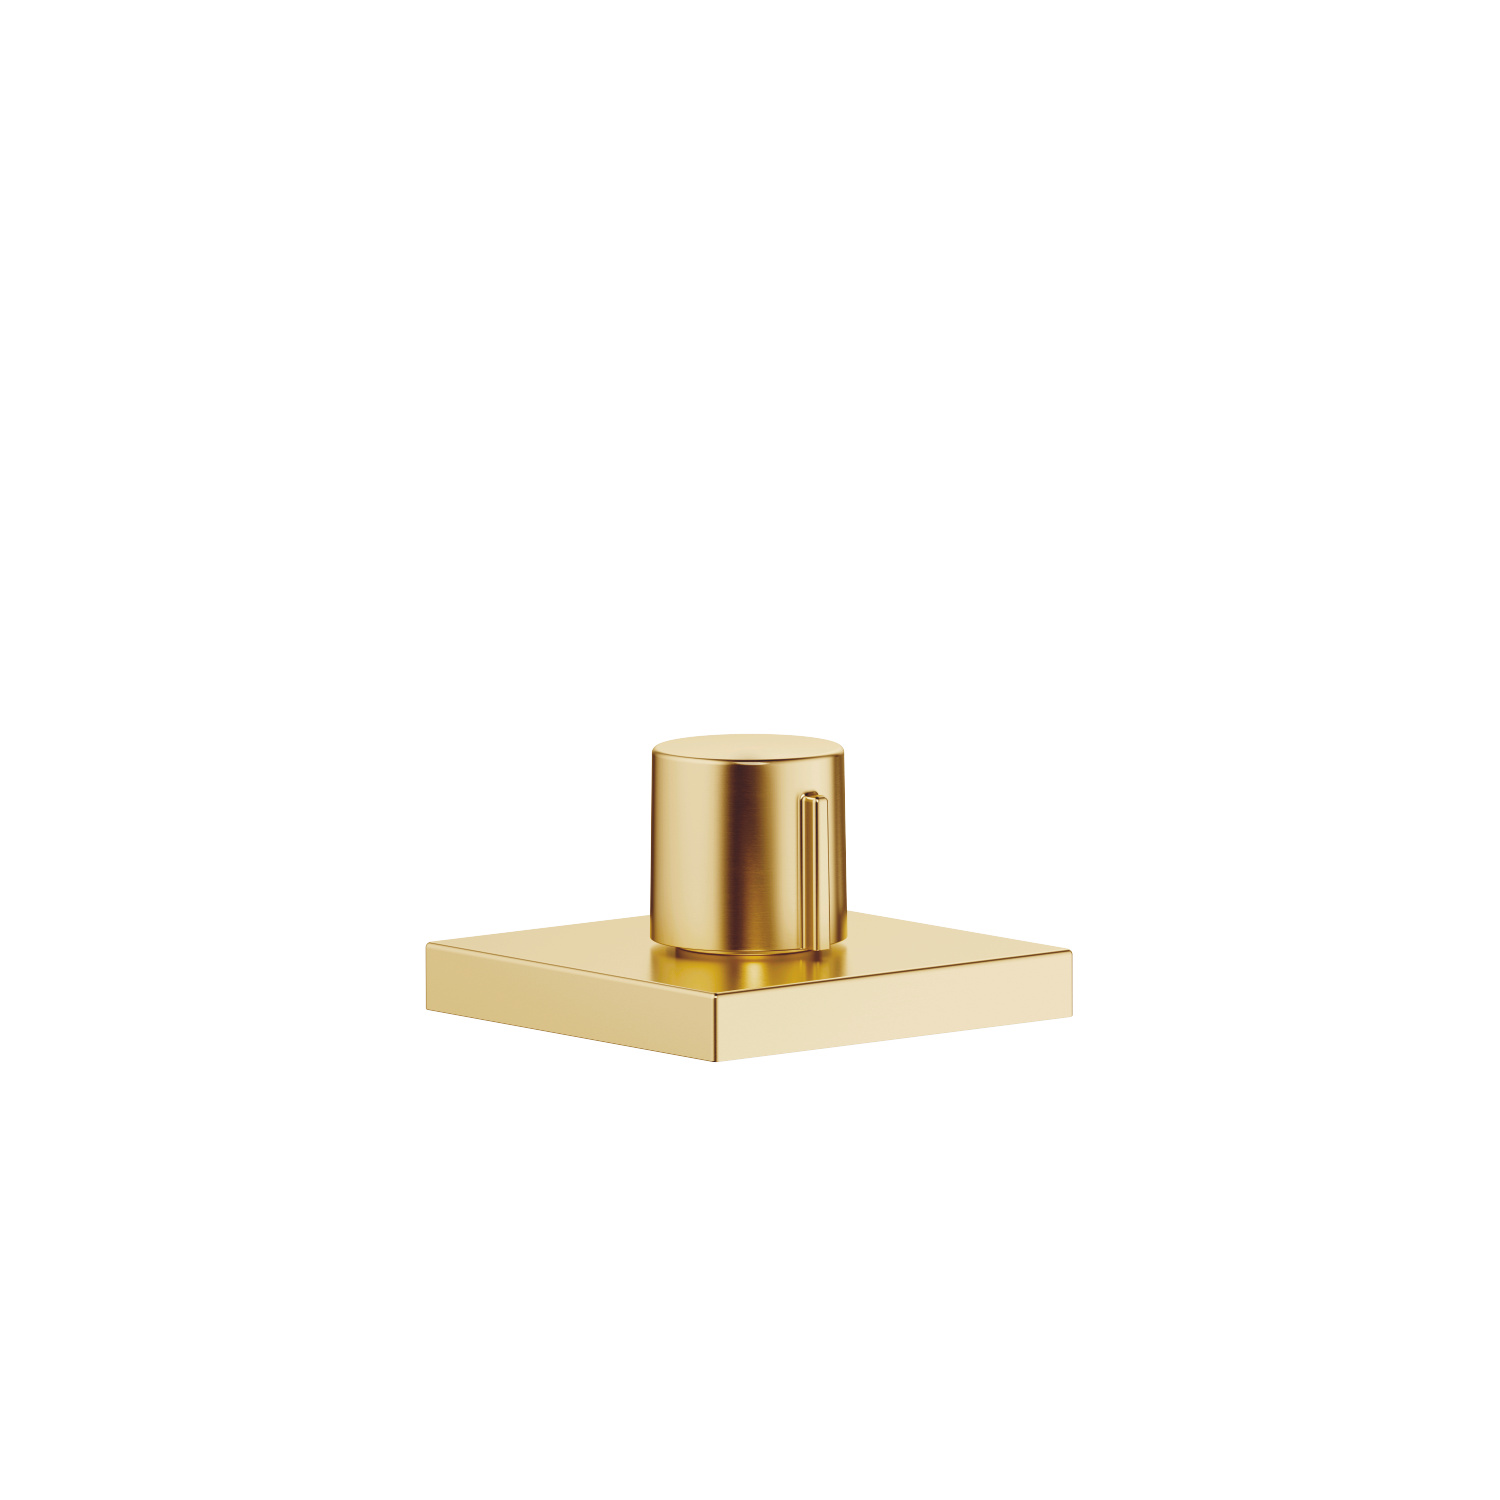 Deck valve counter-clockwise closing hot or cold - Brushed Durabrass